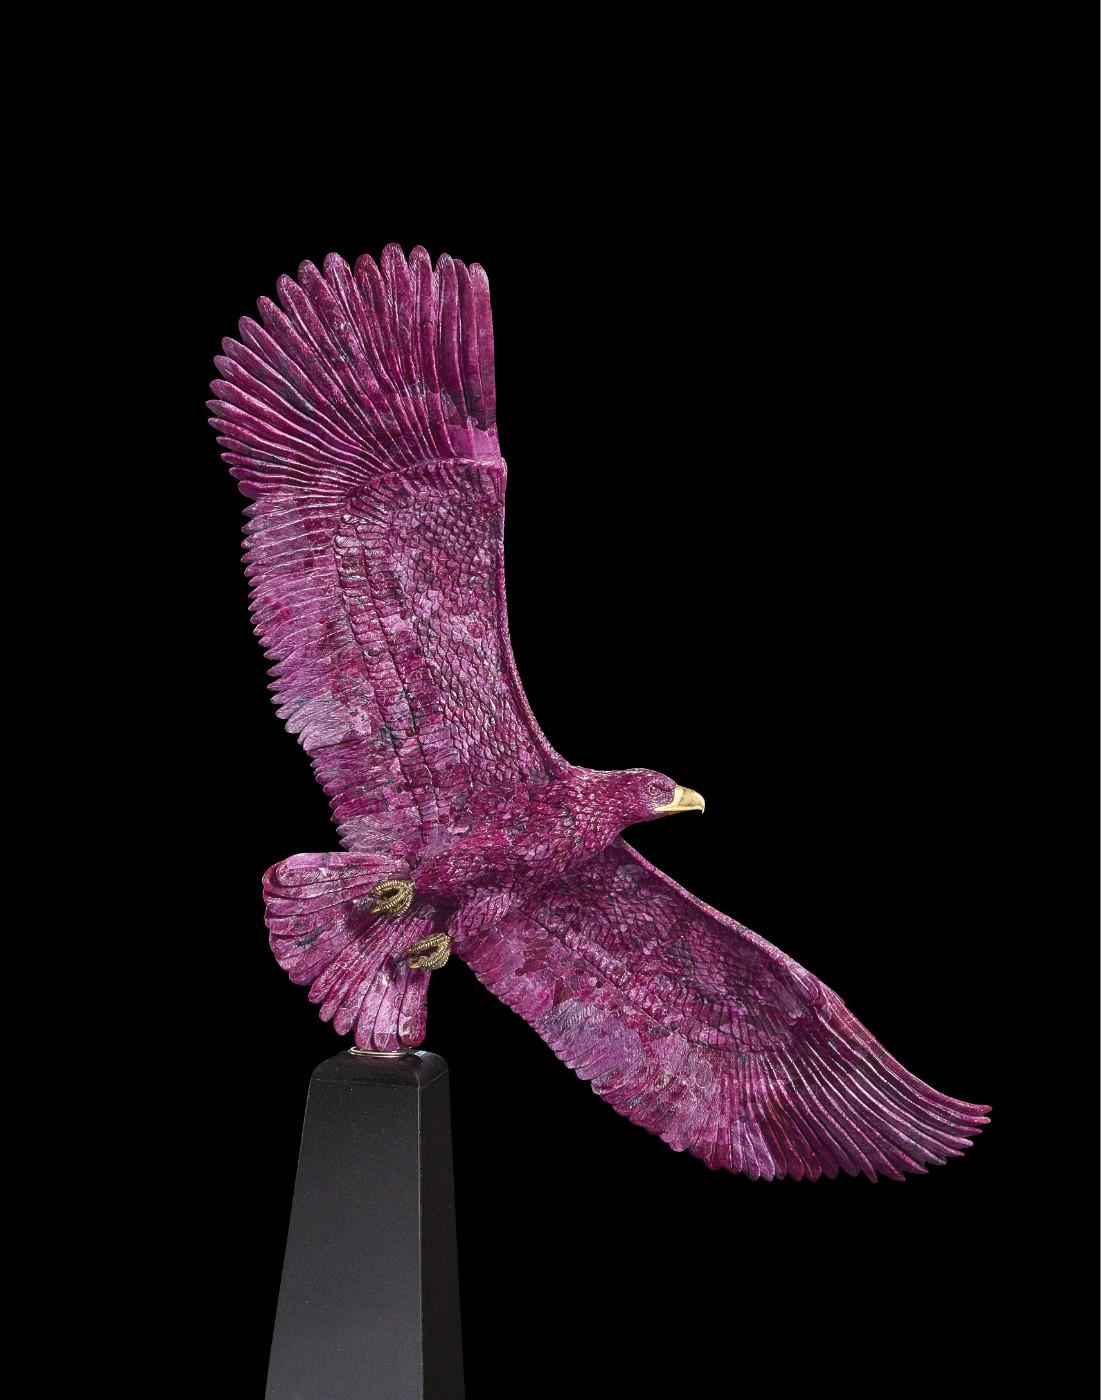 Impressive Ruby, Granite and Gold Eagle Sculpture by Luis Alberto Quispe Aparicio, Circa 2007, Lima, Peru (estimate: $25,000-35,000